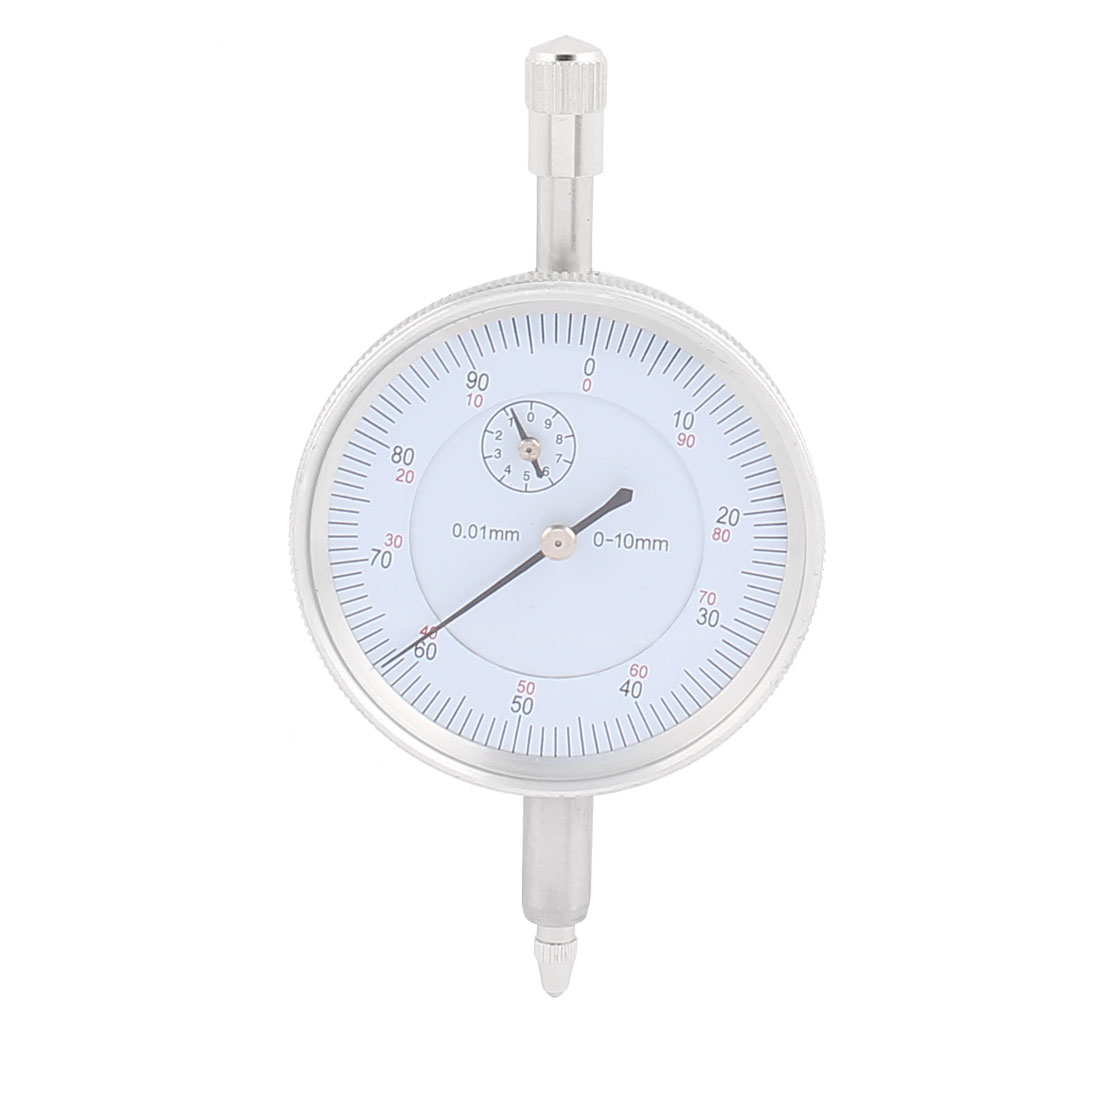 0-10mm Range Measurement Instrument Dial Indicator Gauge Precision Tool A-05